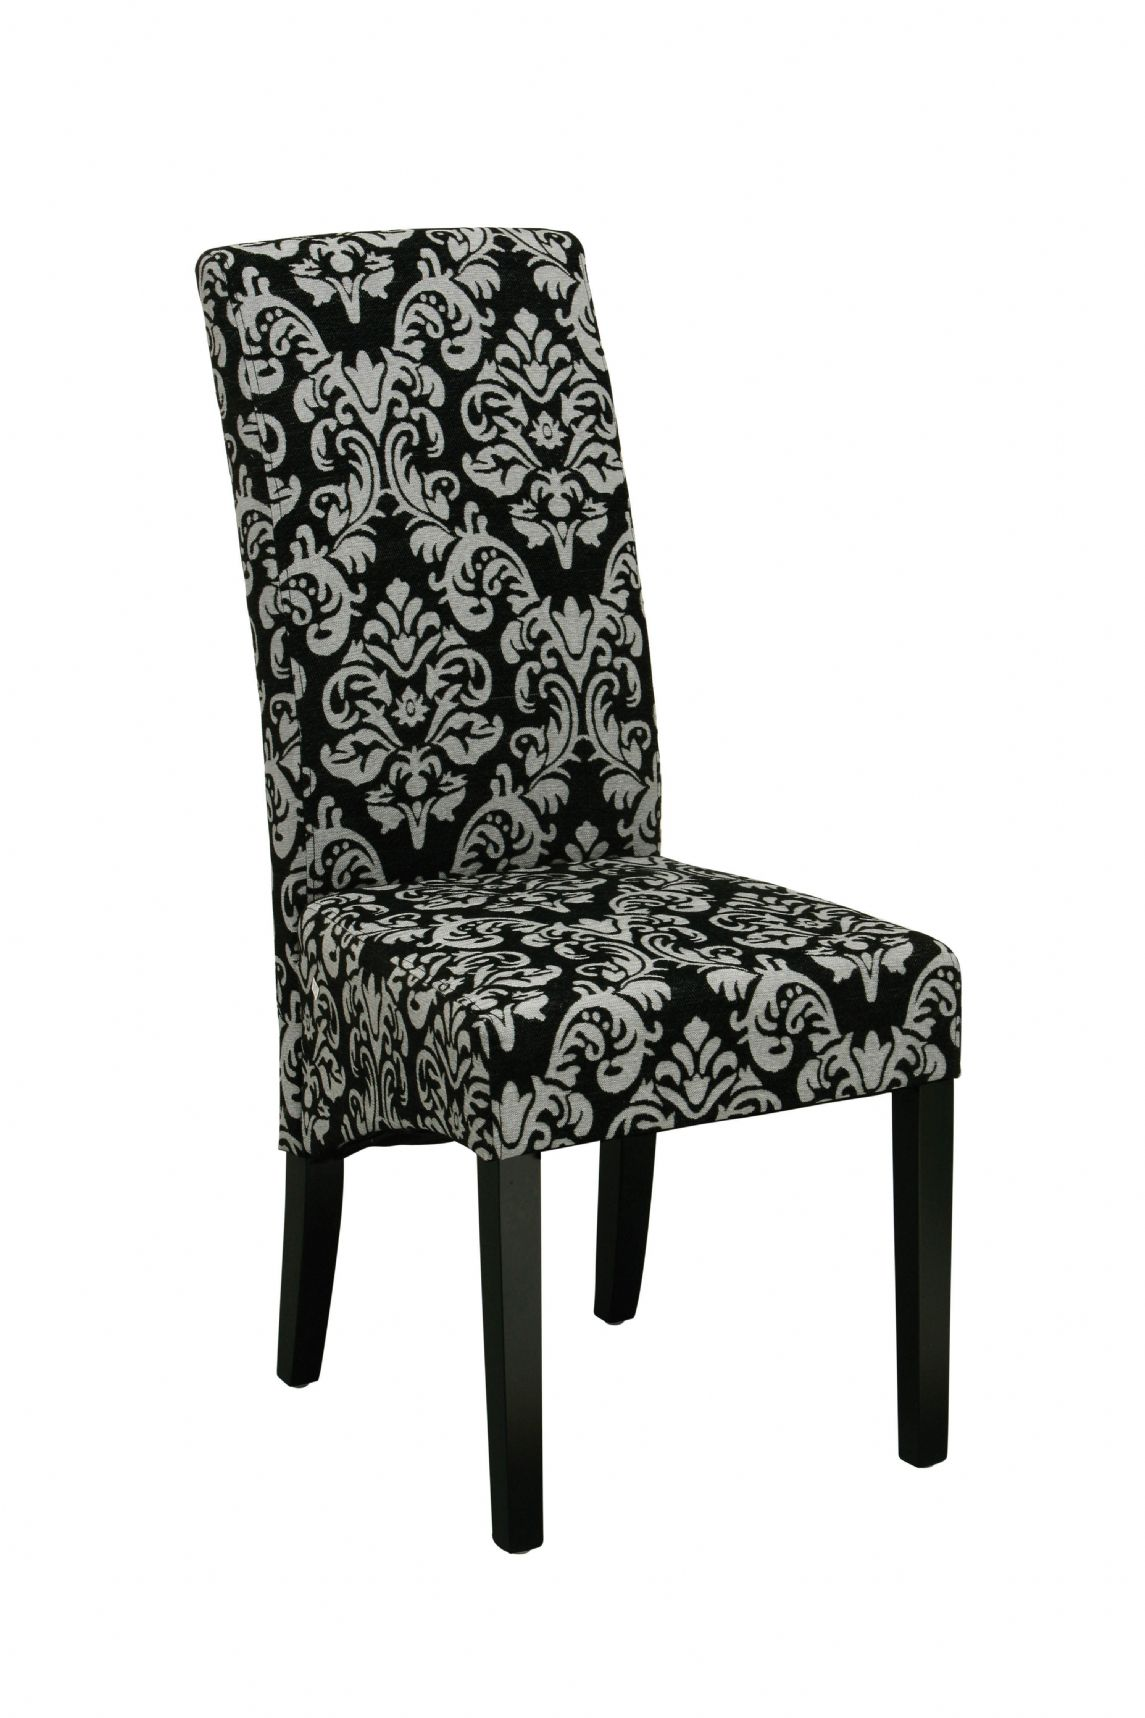 Fabric For Chairs